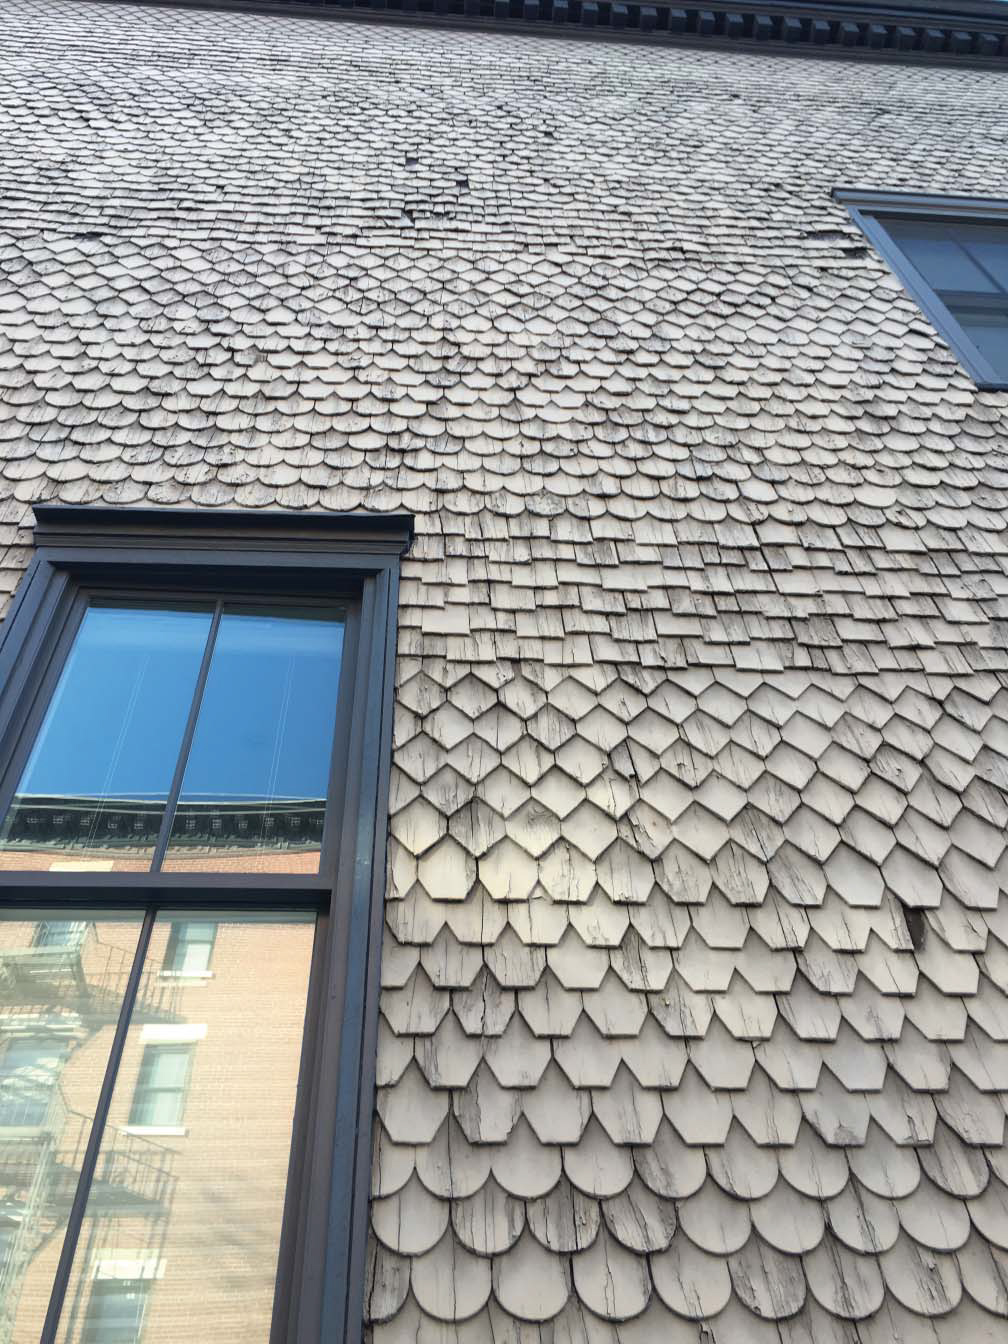 Existing shingles at 303 Henry Street